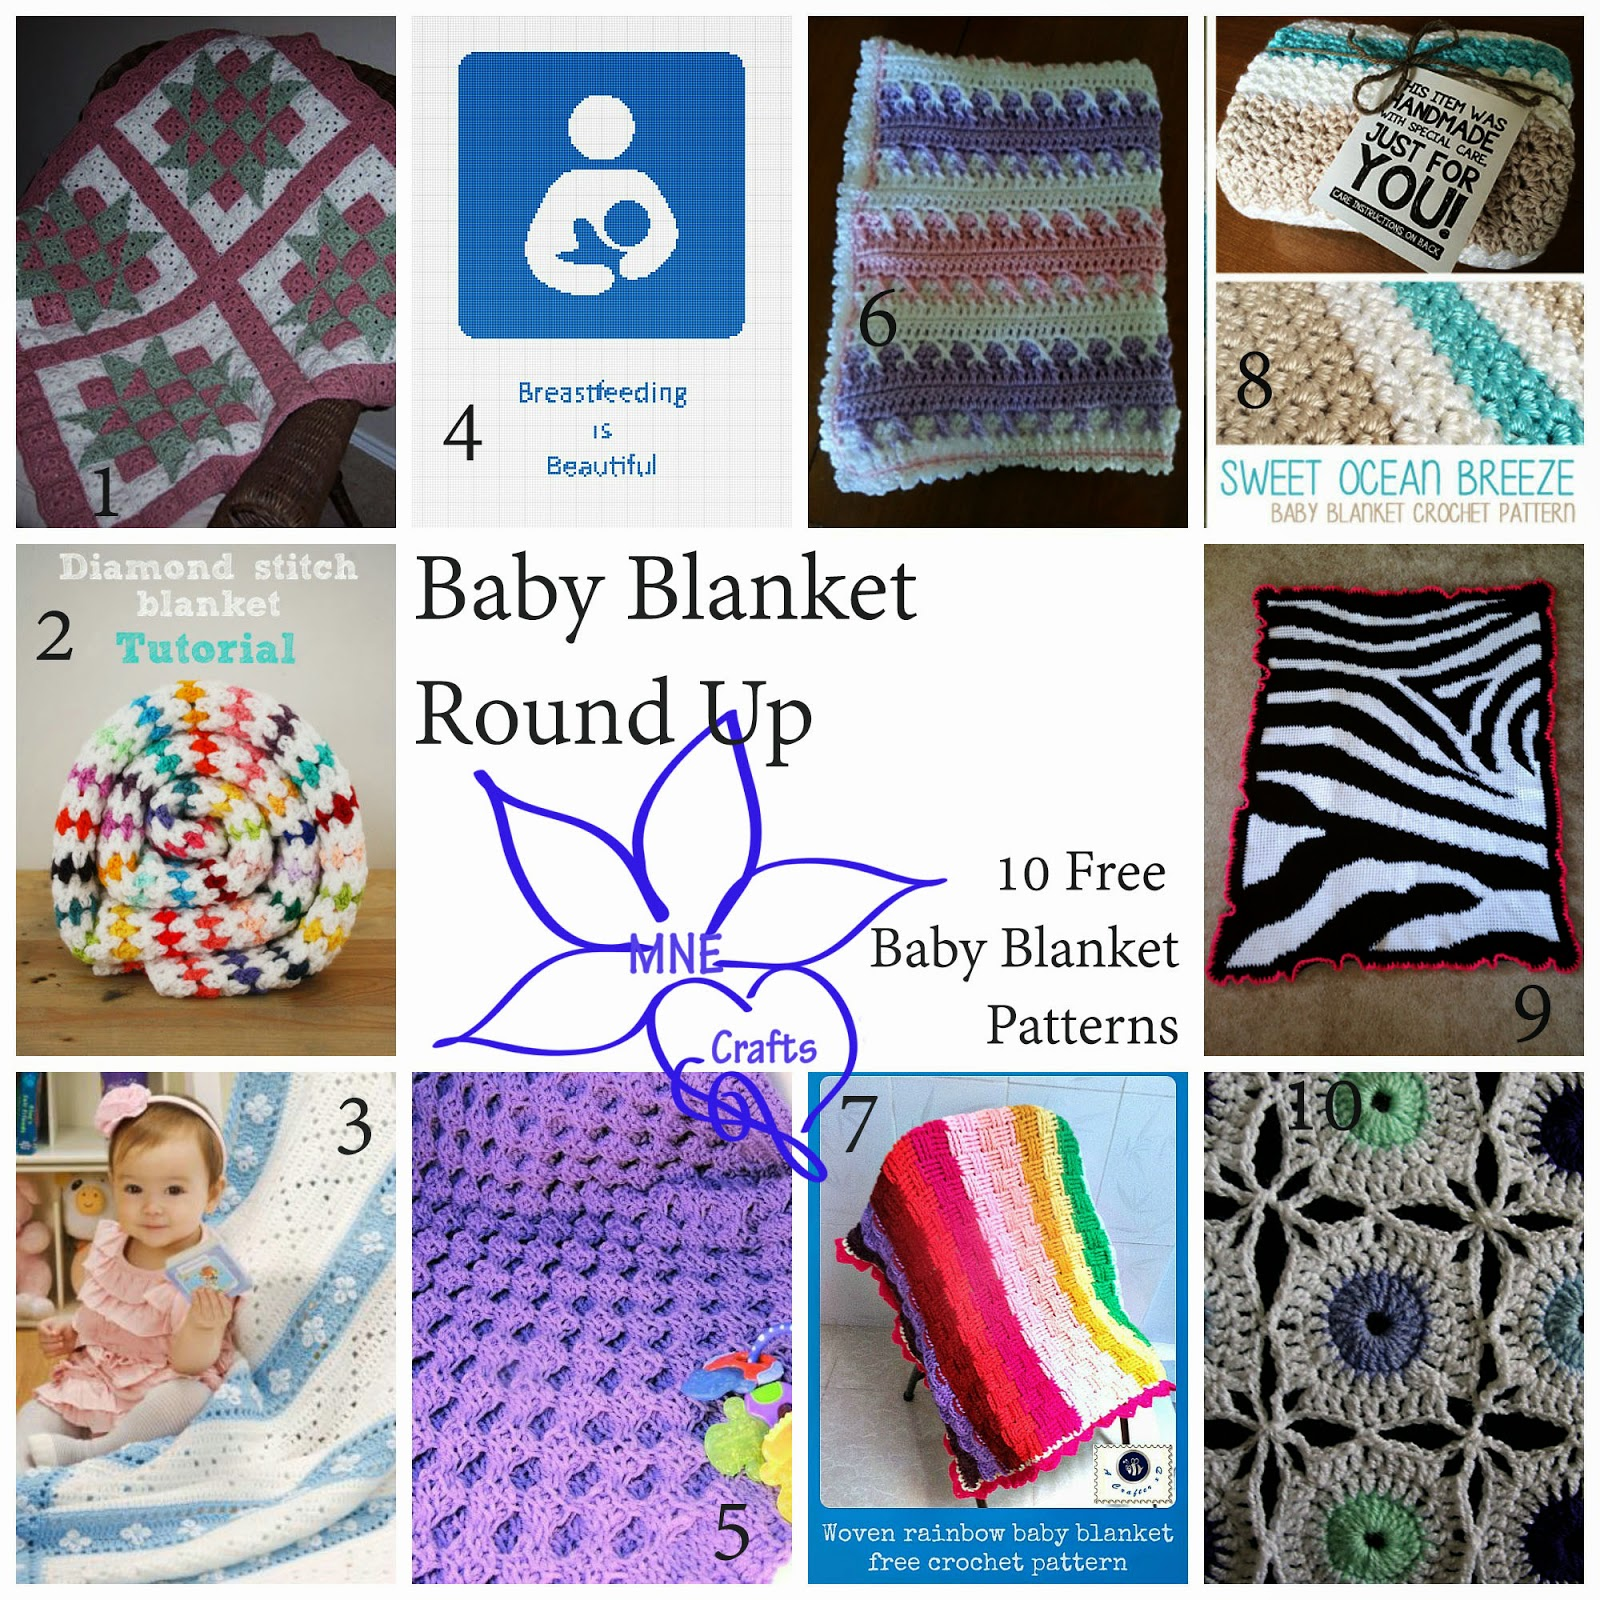 MNE Crafts: Baby Blanket Round Up - 10 Free Patterns